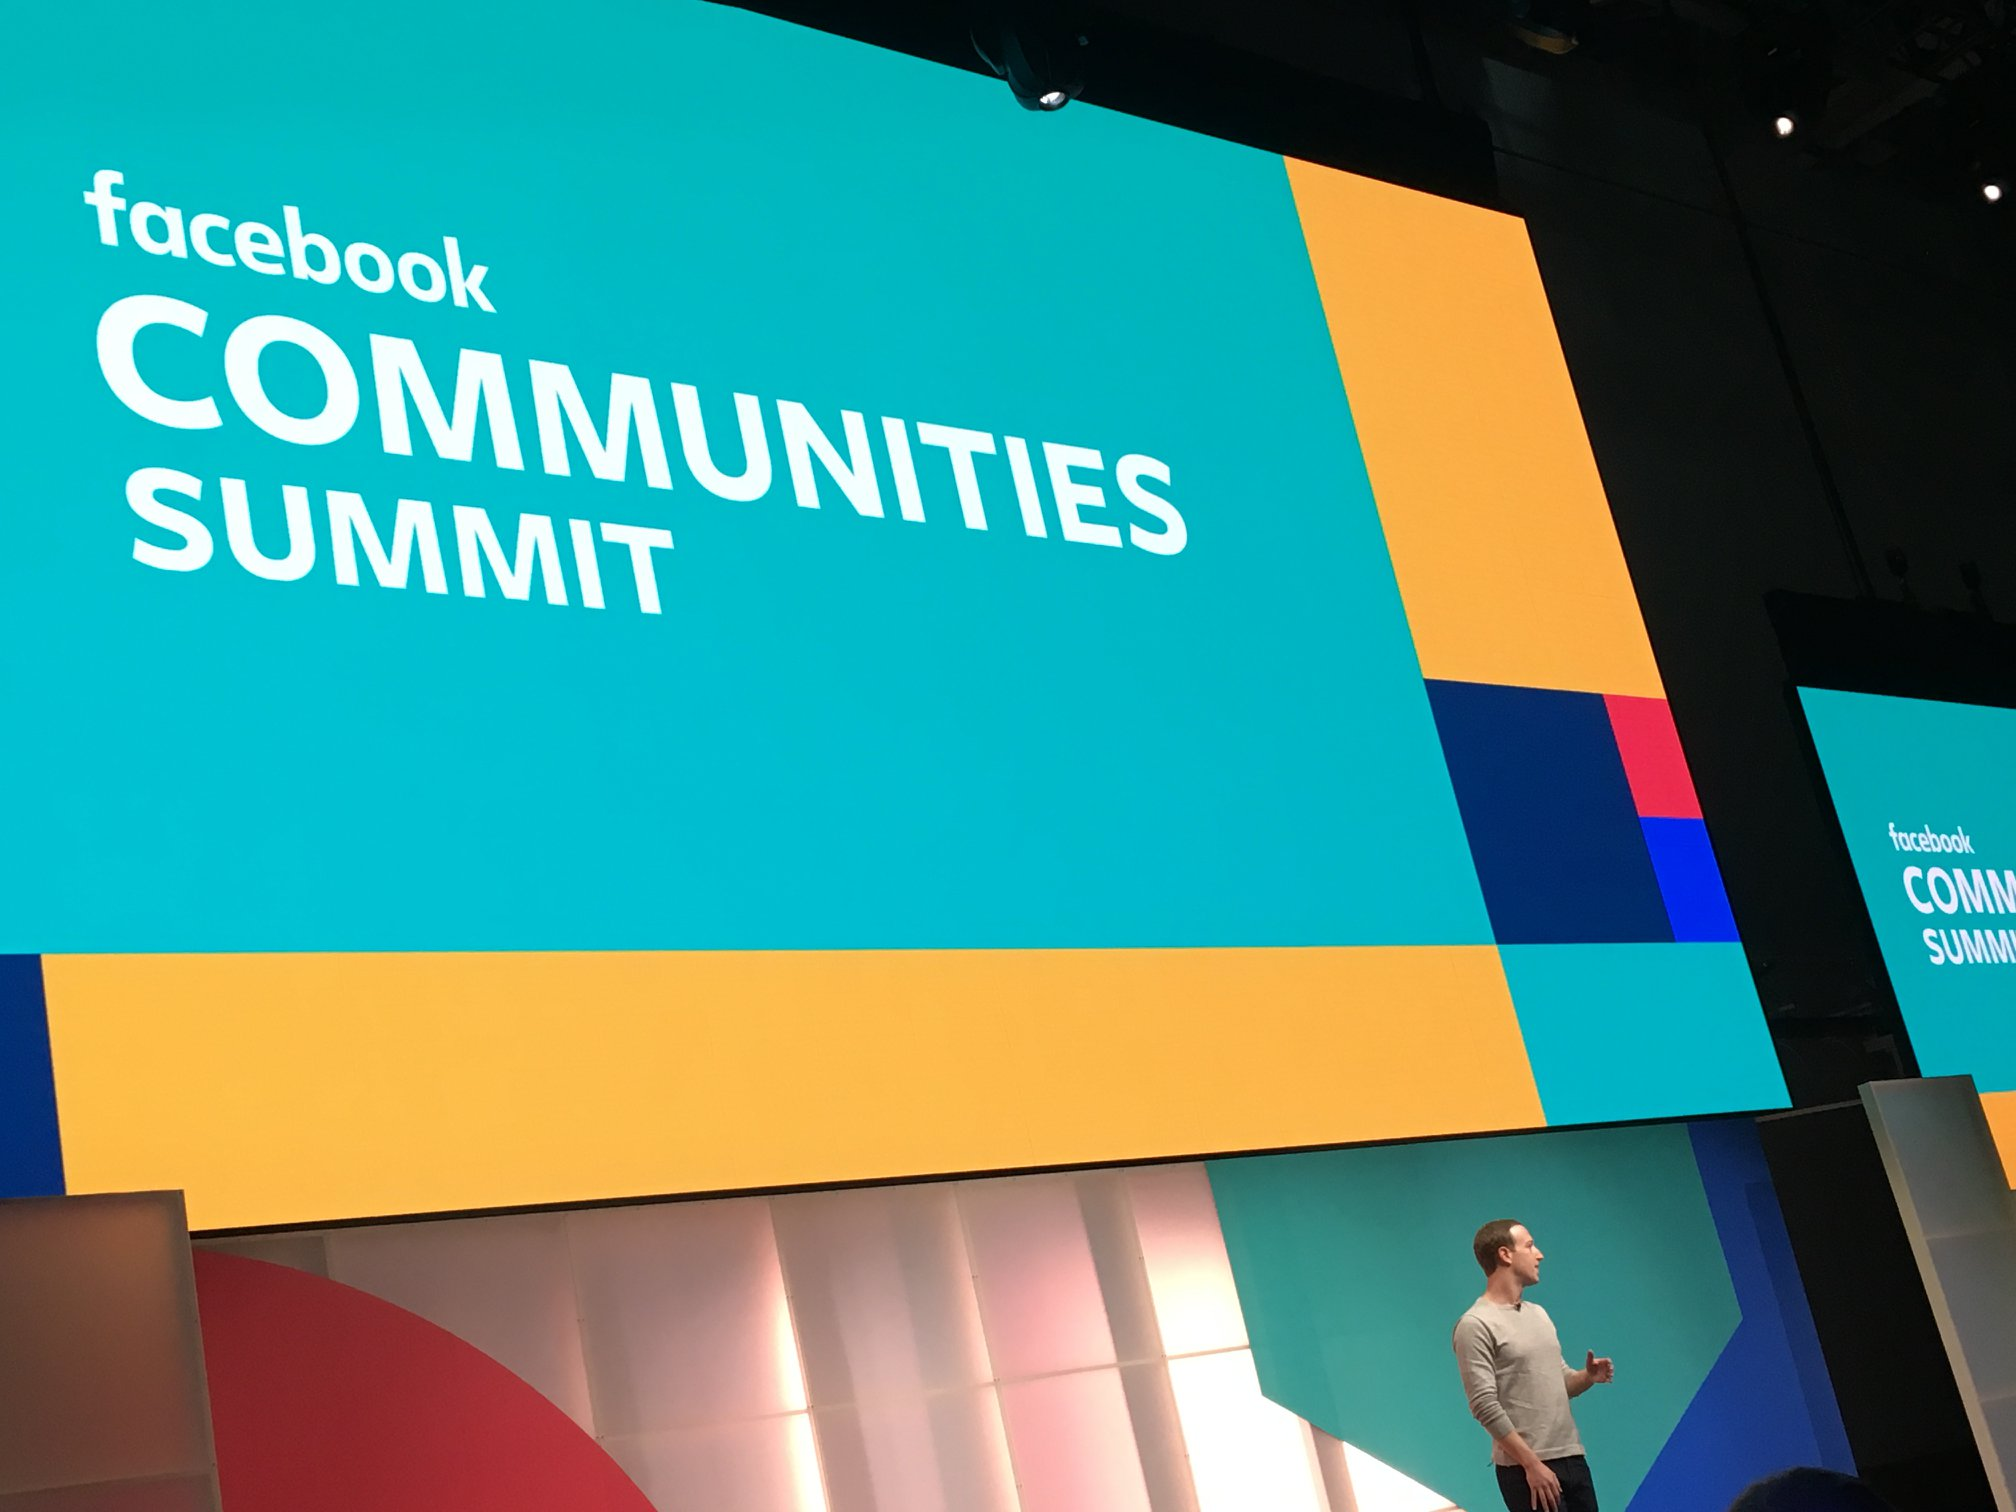 Mark Zuckerburg Presenting at Facebook Communities Summit